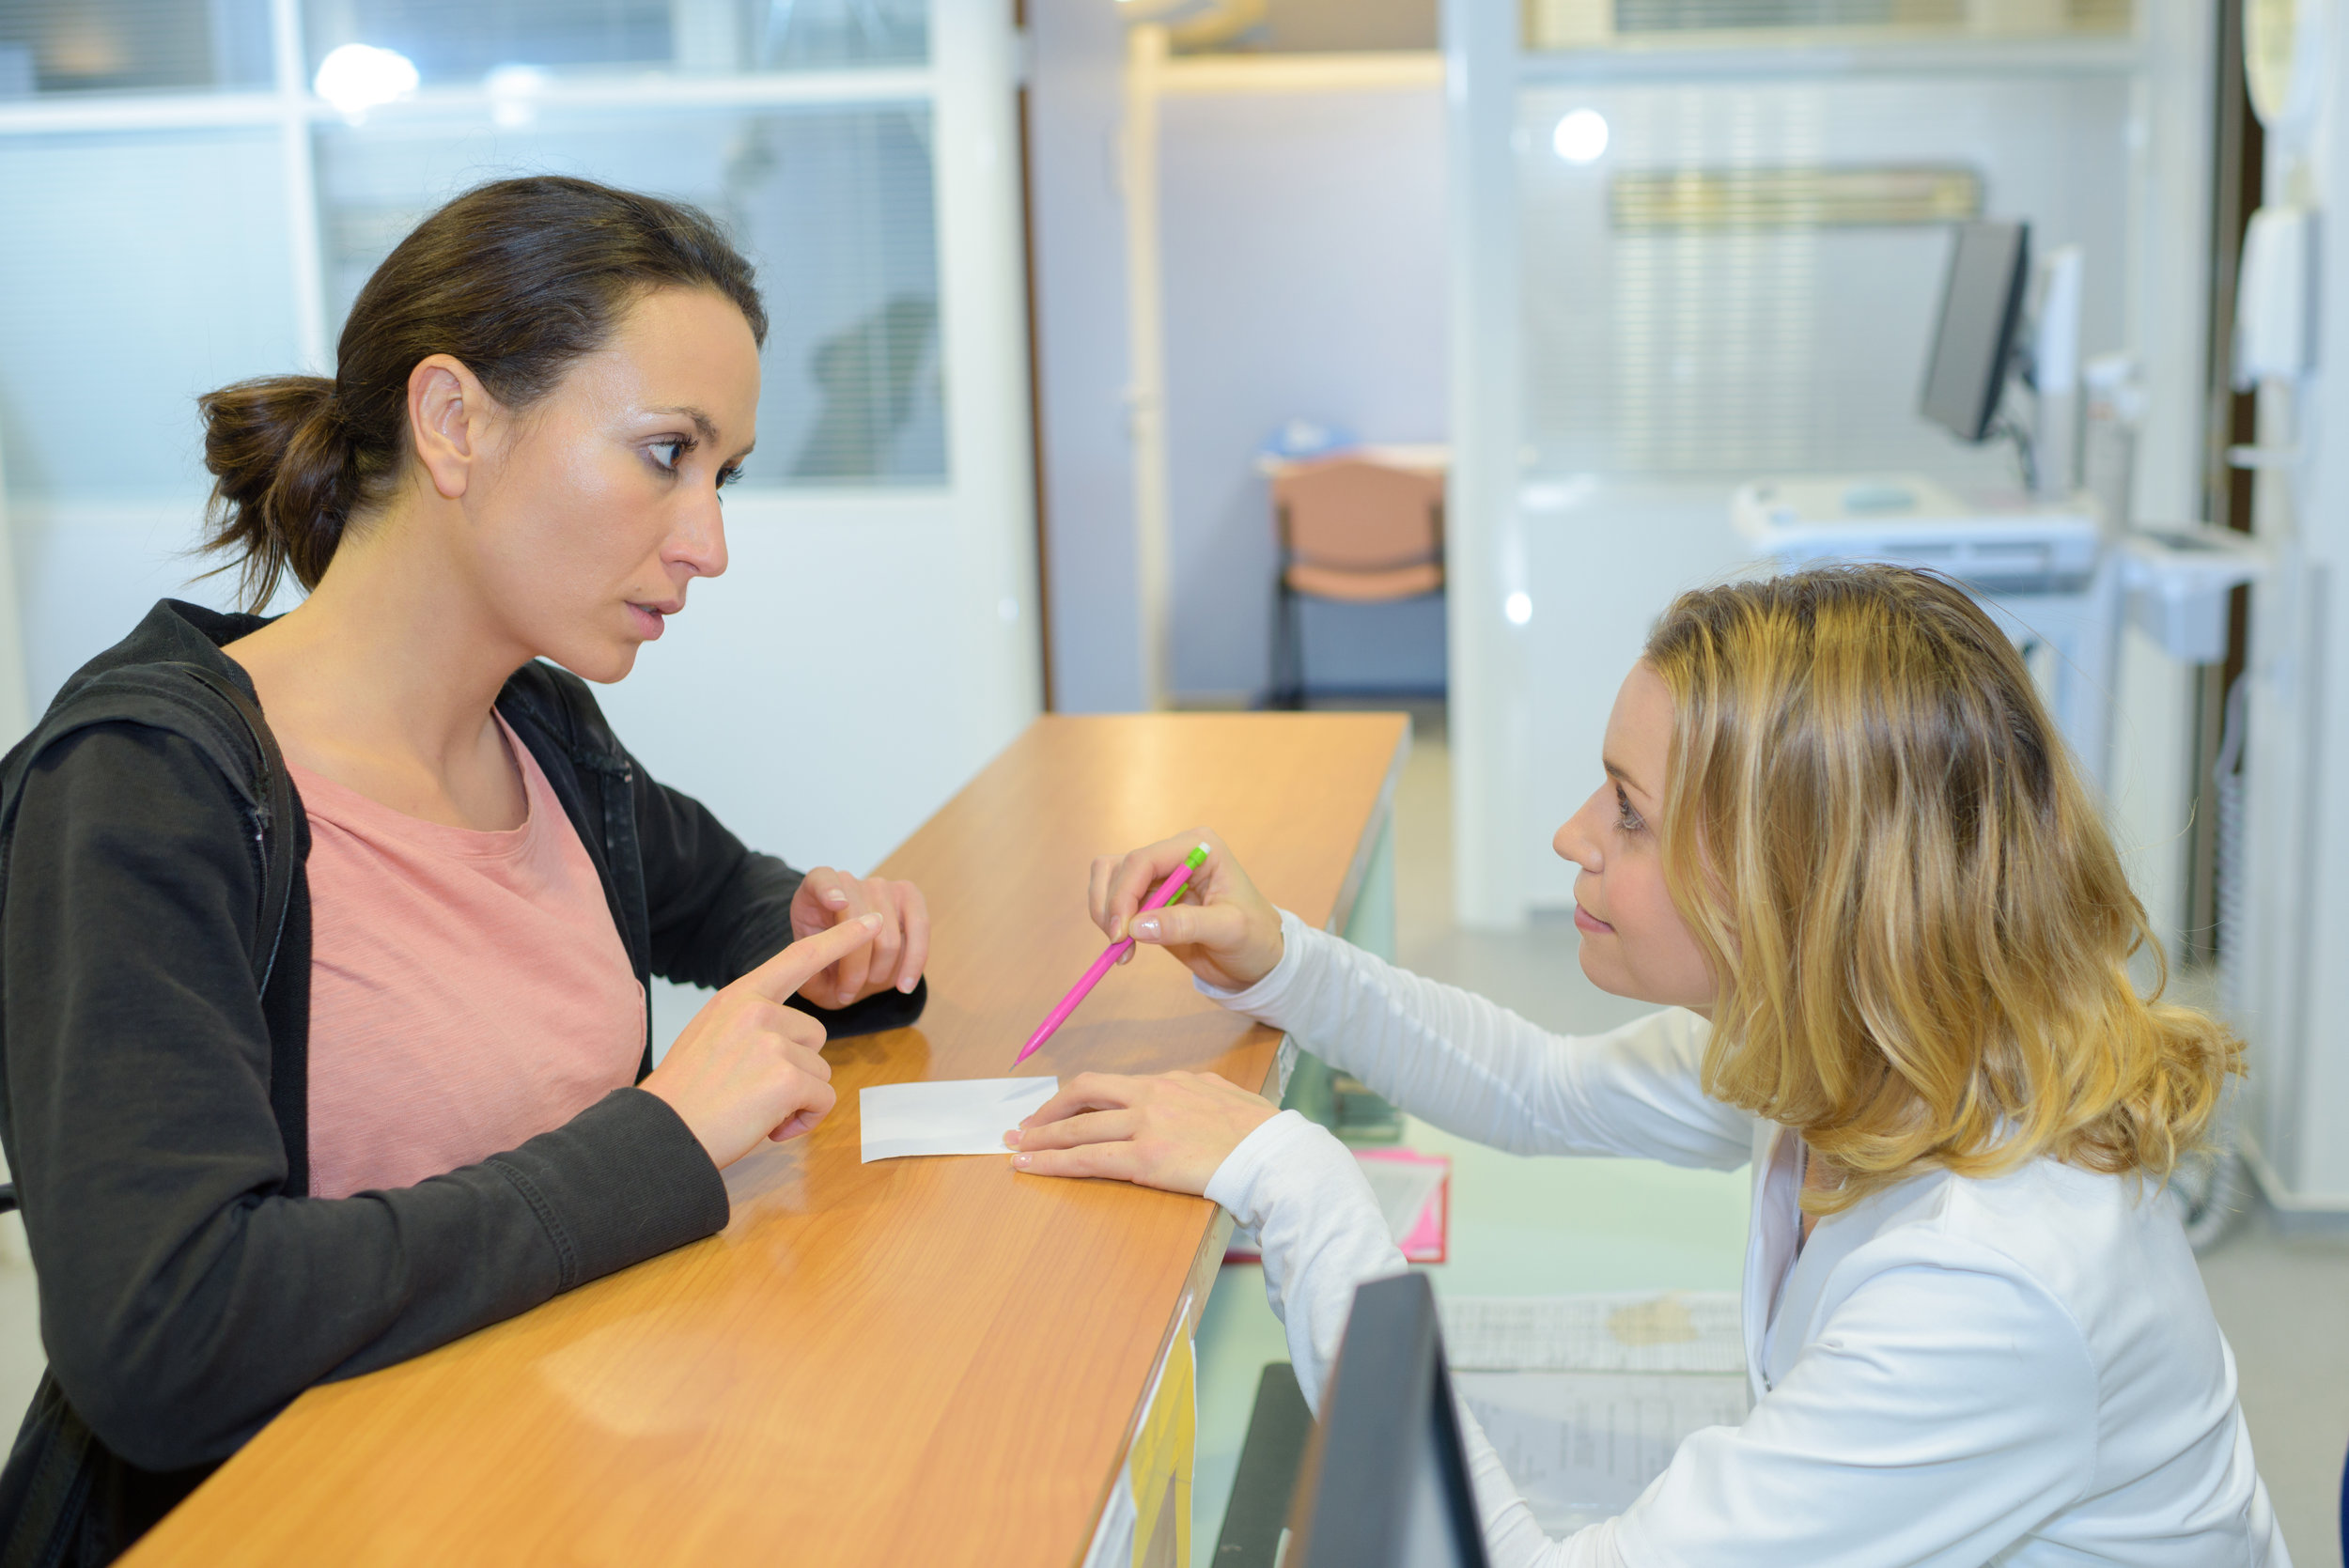 A frustrated patient signing additional forms in the doctor's waiting room